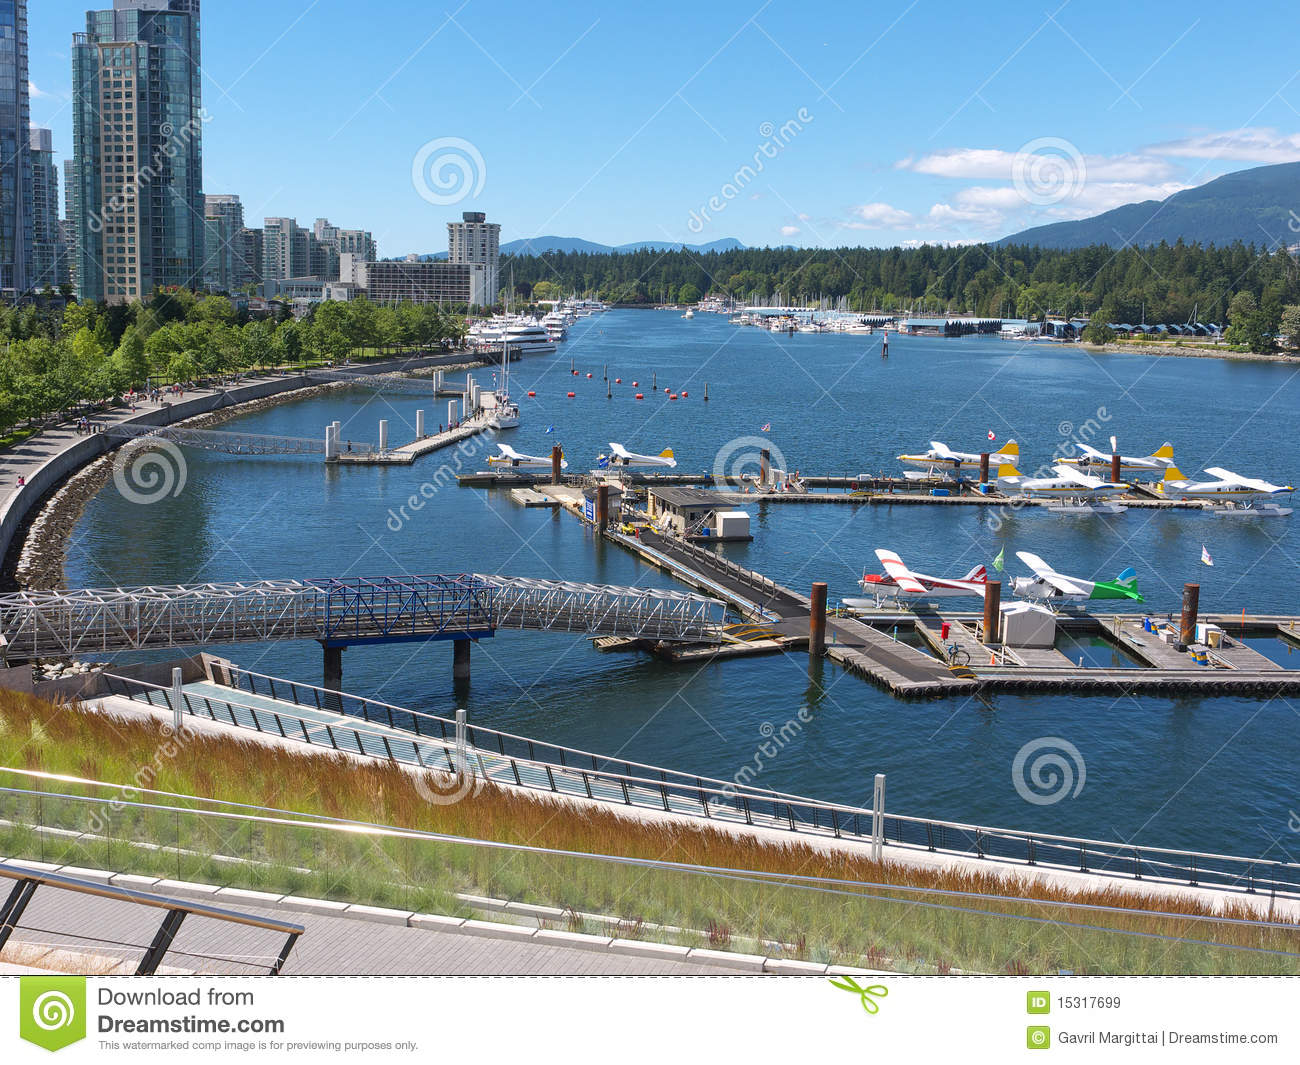 New Airport At Coal Harbor Vancouver Royalty Free Stock Images.